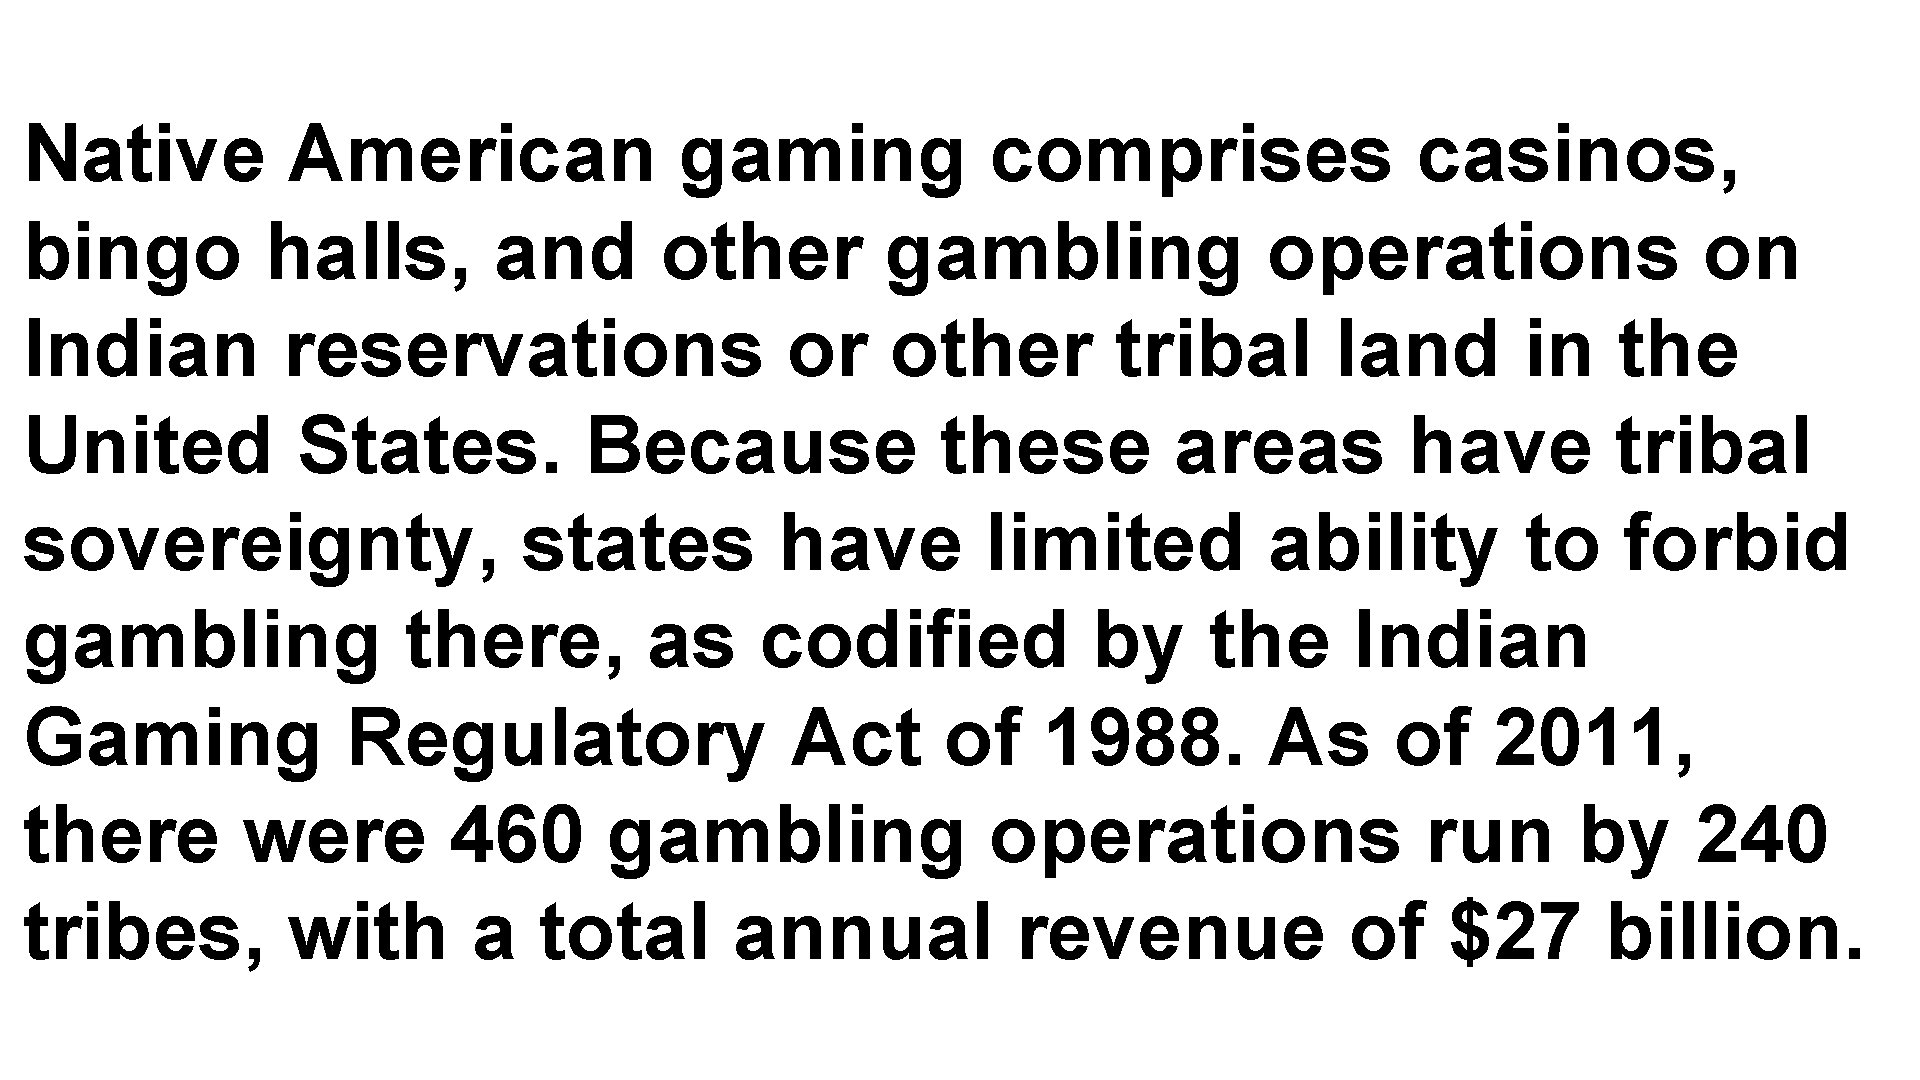 Native American gaming comprises casinos, bingo halls, and other gambling operations on Indian reservations